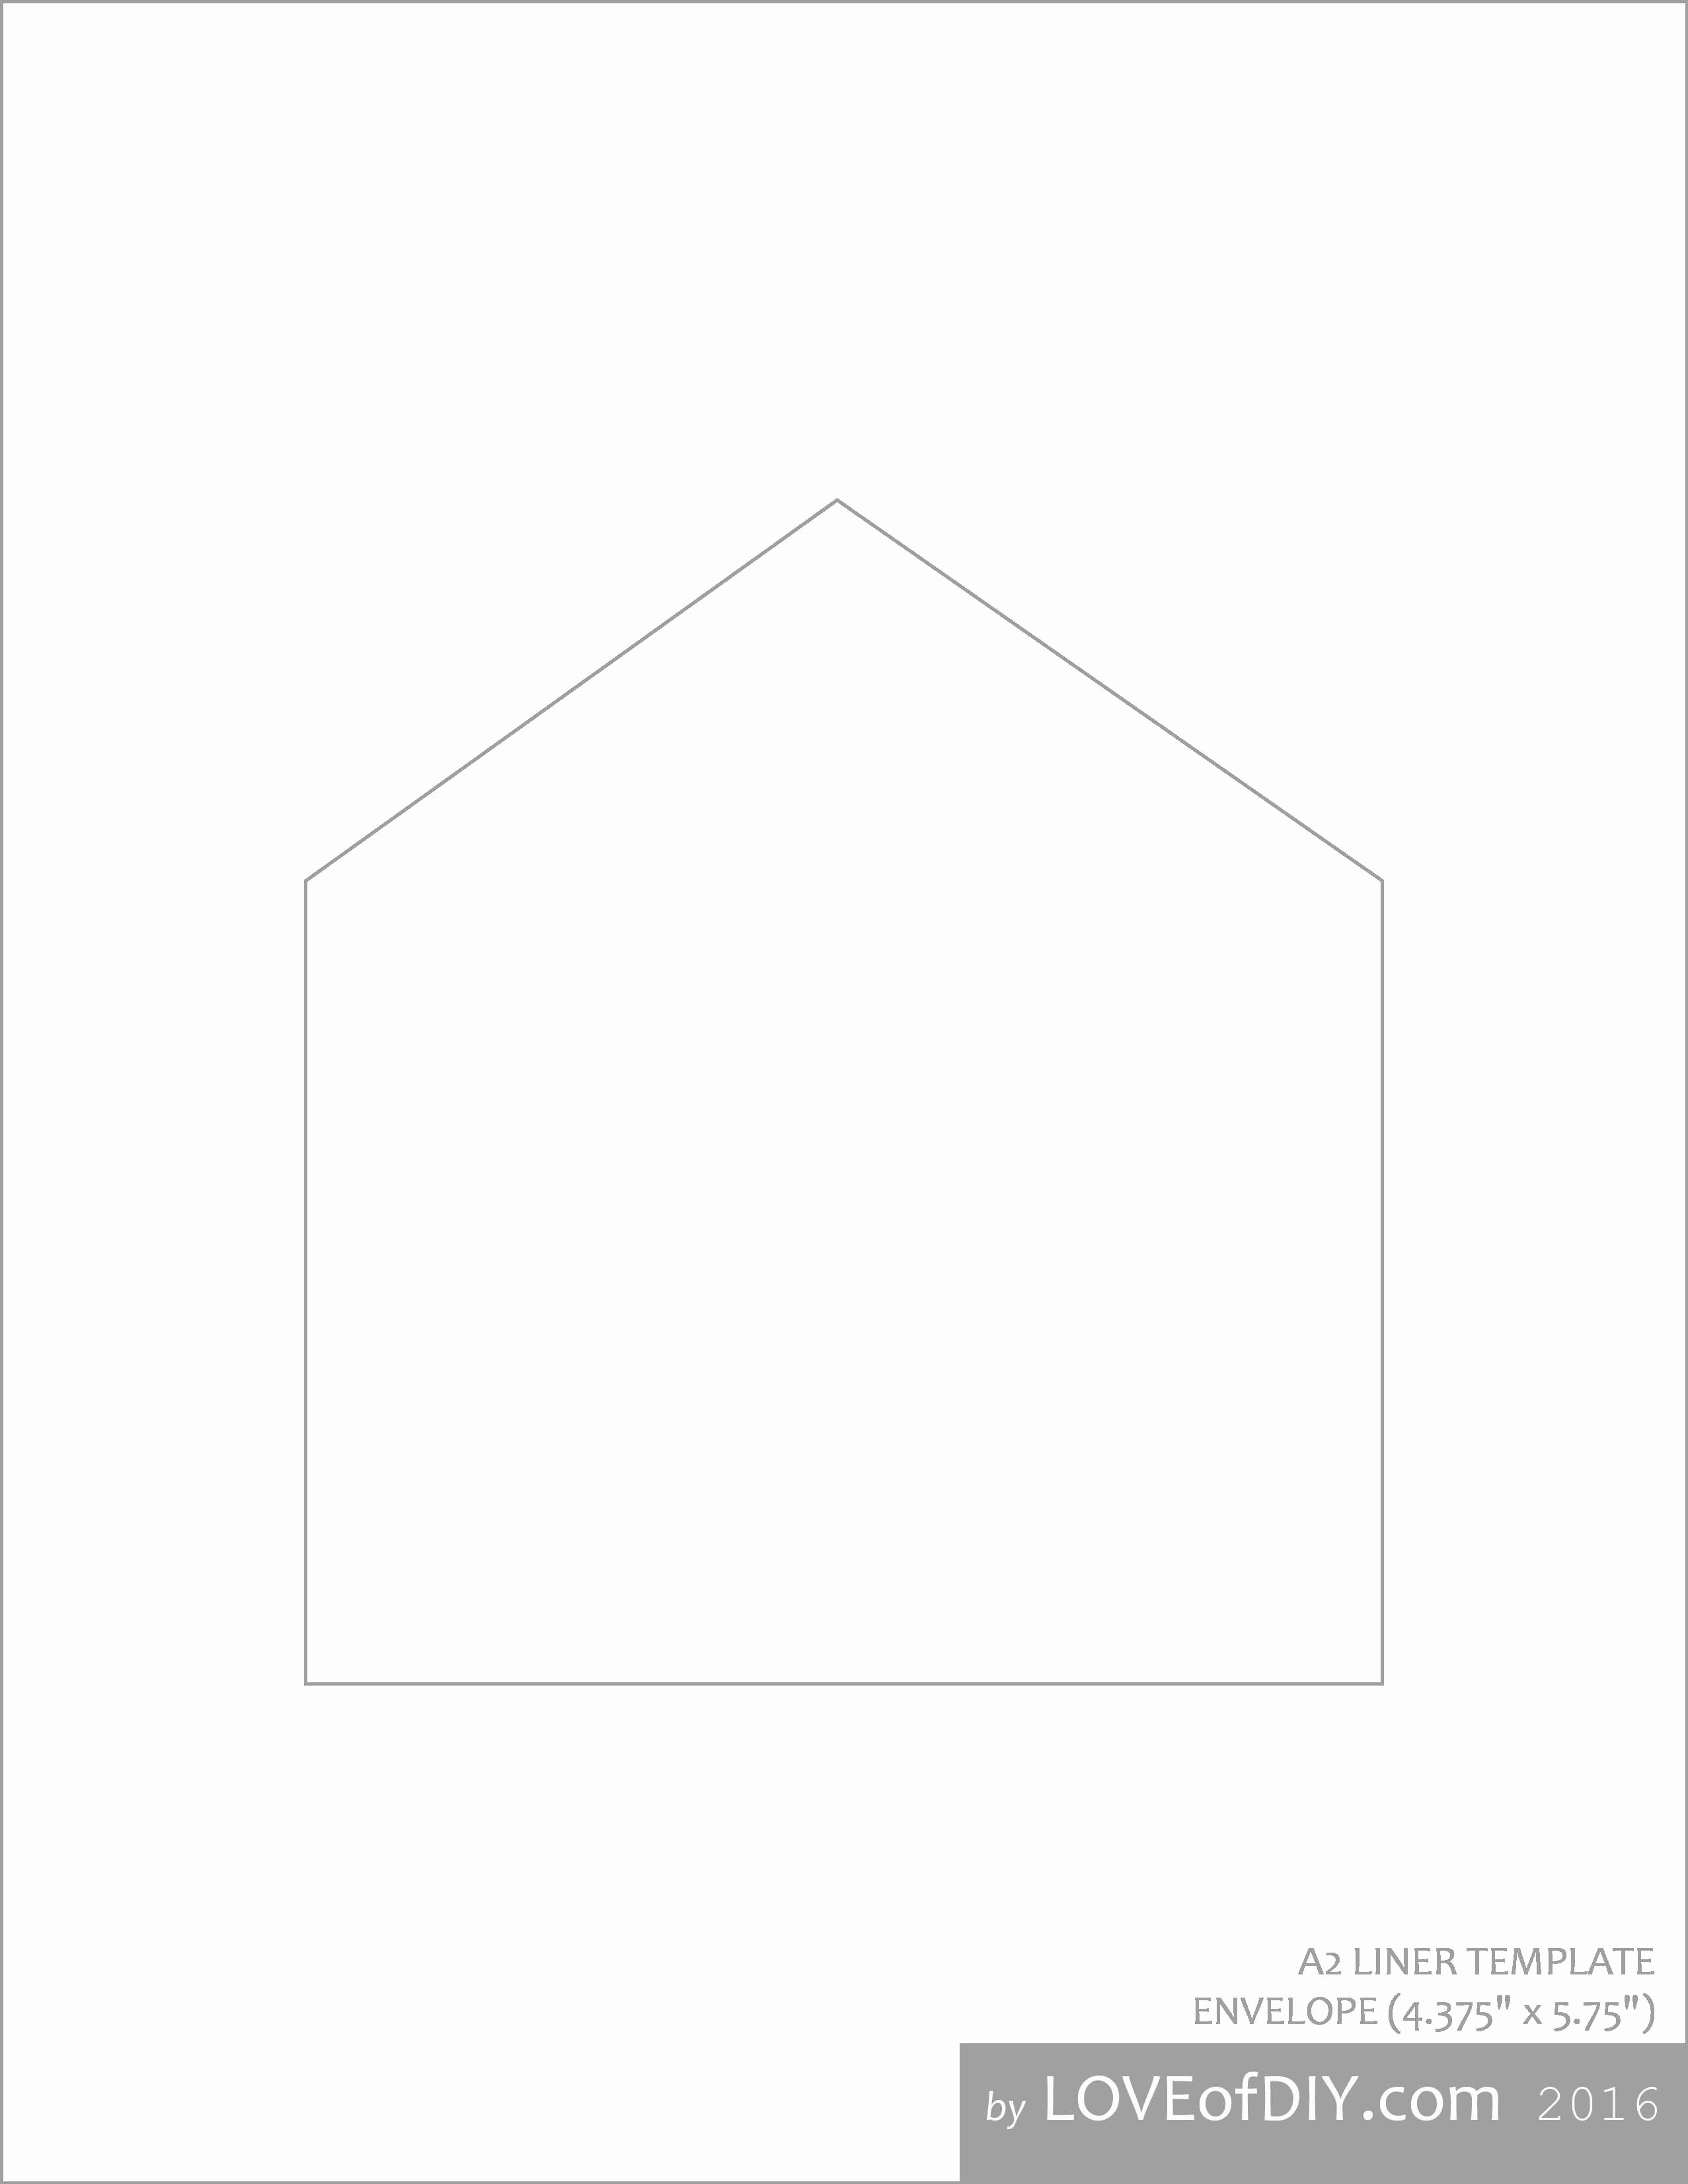 A7 Envelope Template Word New Best A7 Envelope Liner Template Download